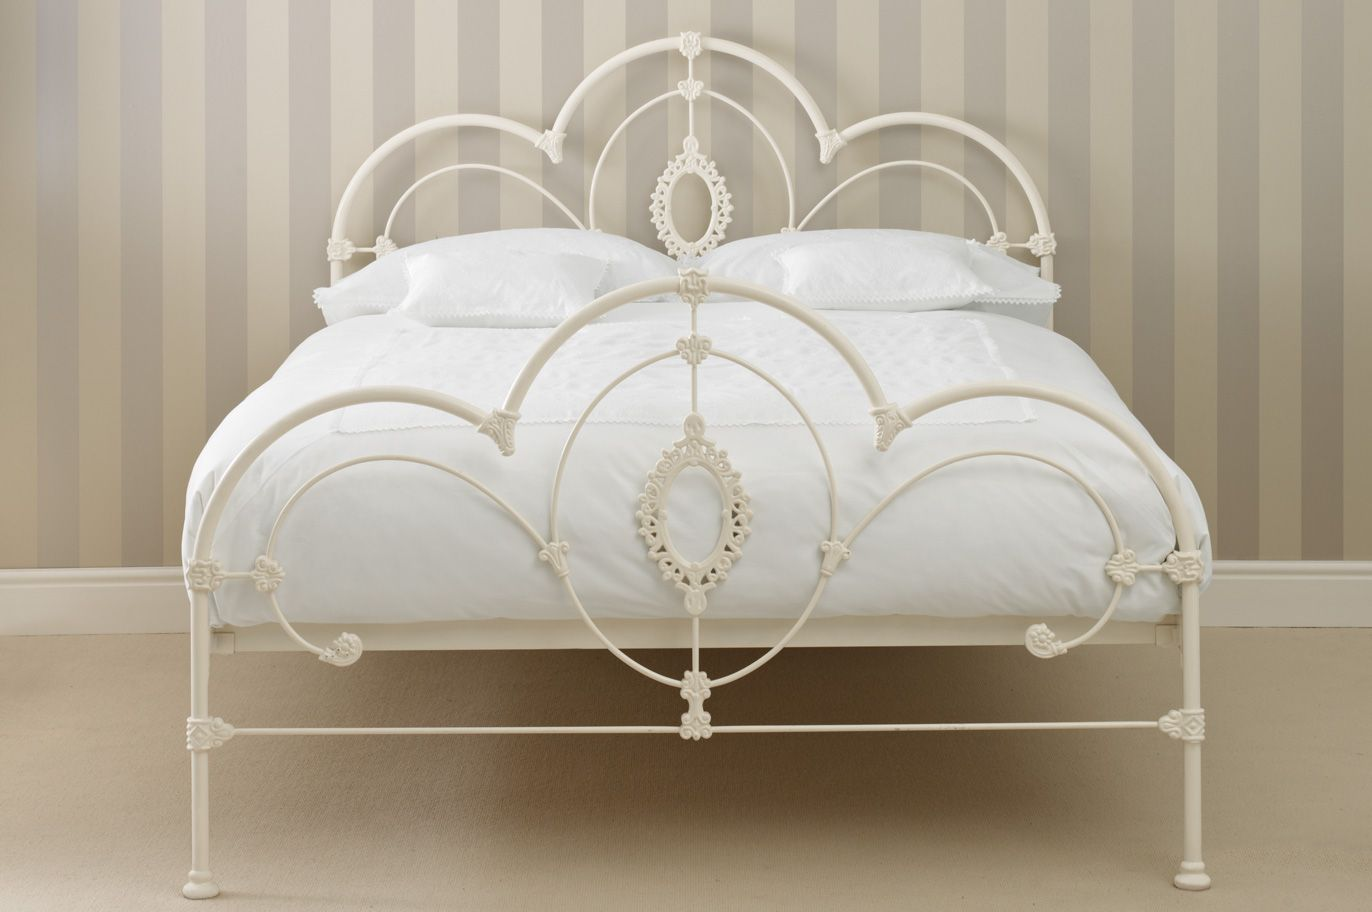 Somerset Metal Bed Frame In Ivory With Curved Scrolls Cameo Accents From Laura Ashley Iron Bed Frame White Bed Frame Iron Bed